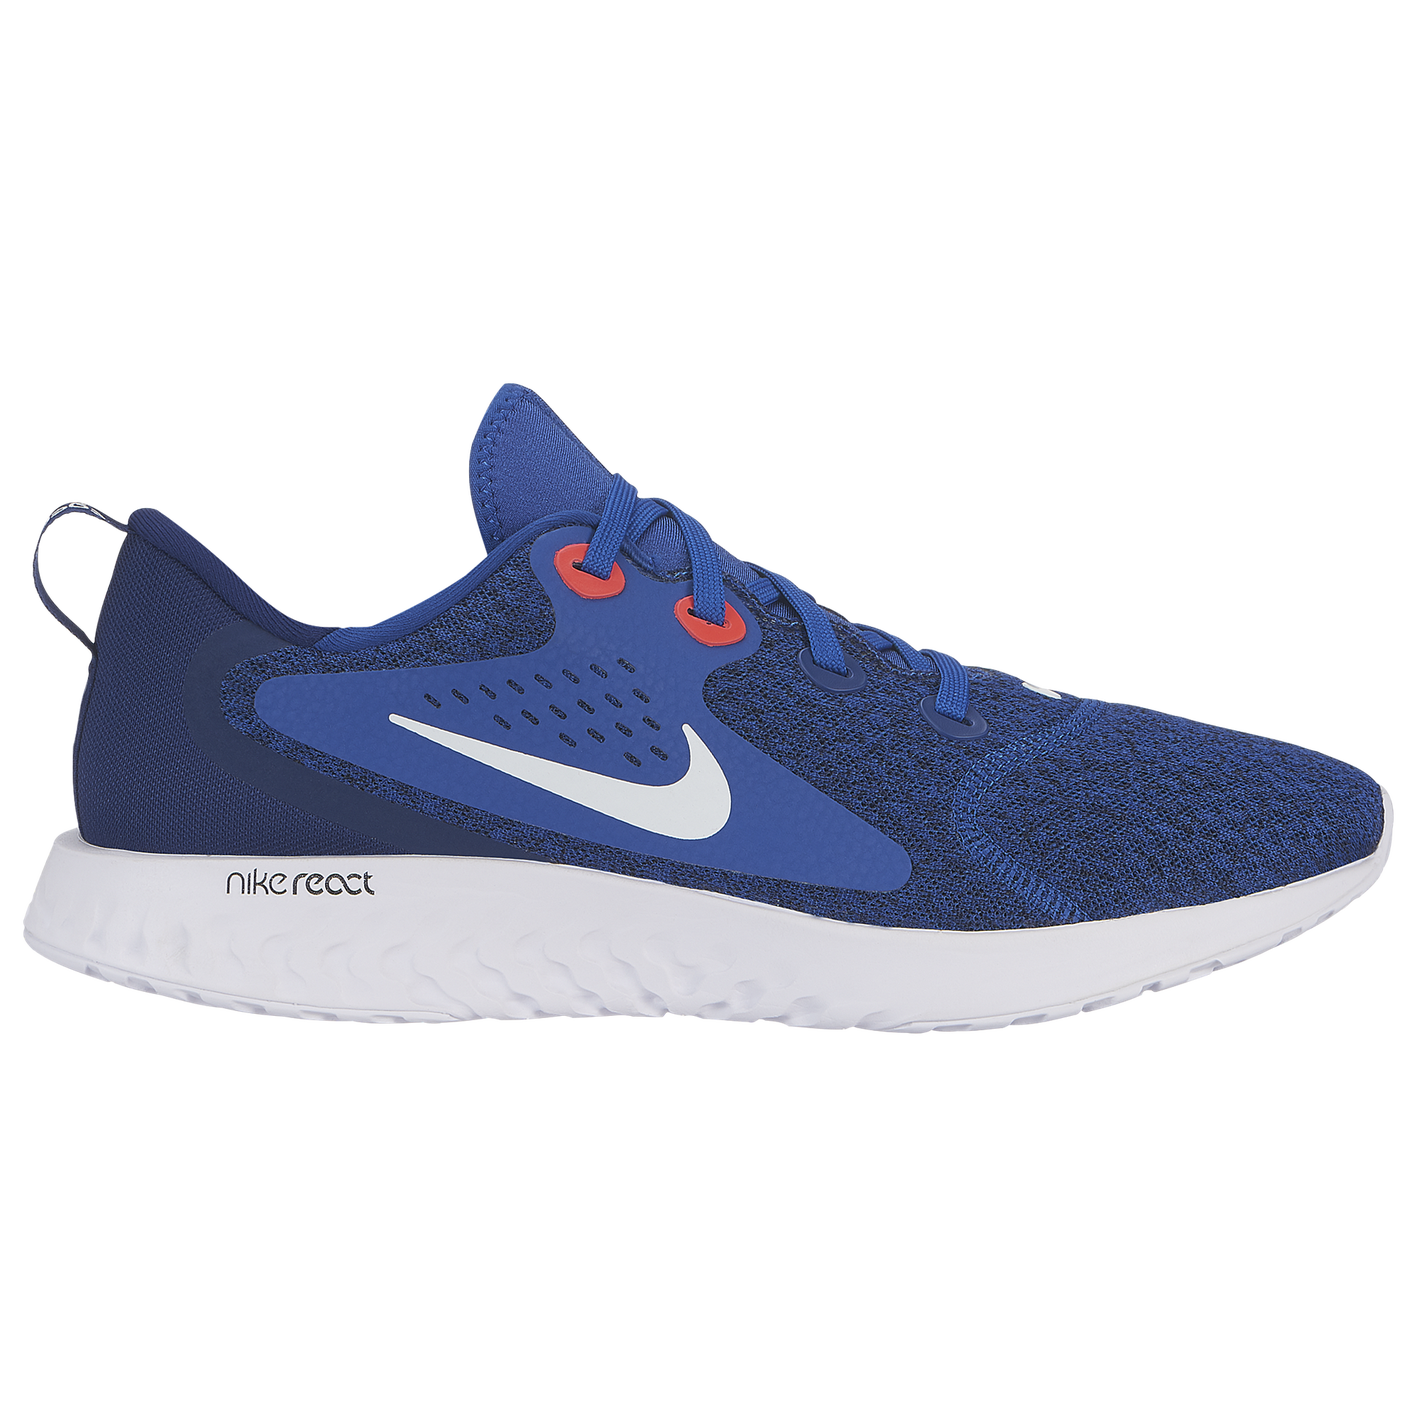 half off 4151c 0481c Nike Legend React - Men s.  69.99 -  100.00. Product    A1625405. Selected  Style  Aviator Grey Black Blue Fury White ...